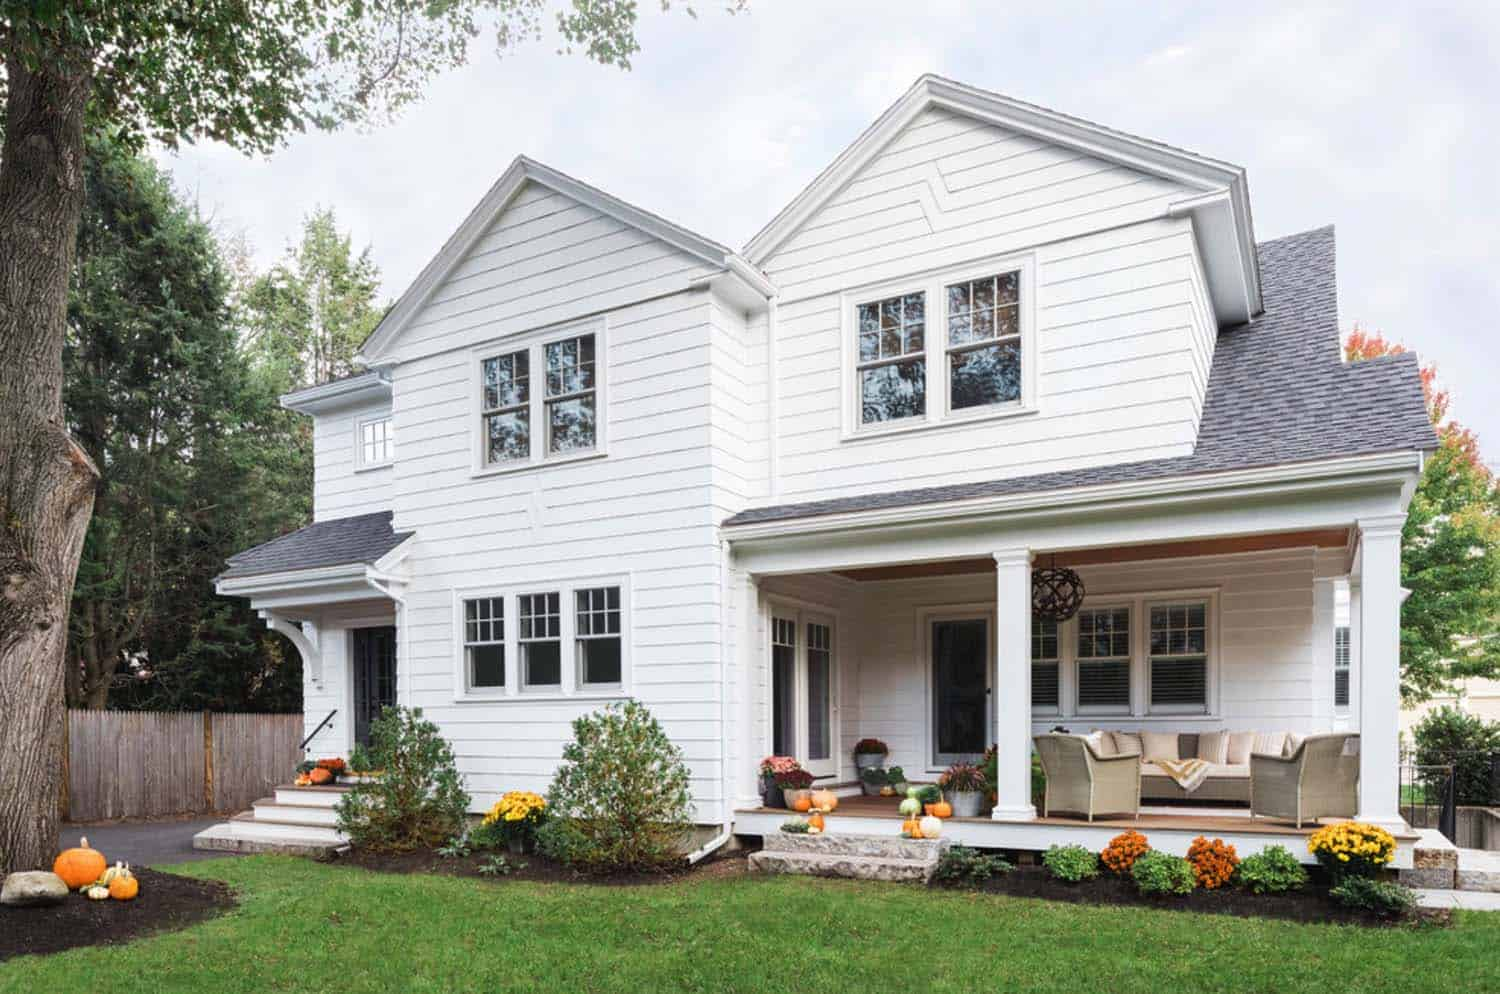 Beautifully renovated Dutch Colonial style home nestled in New England